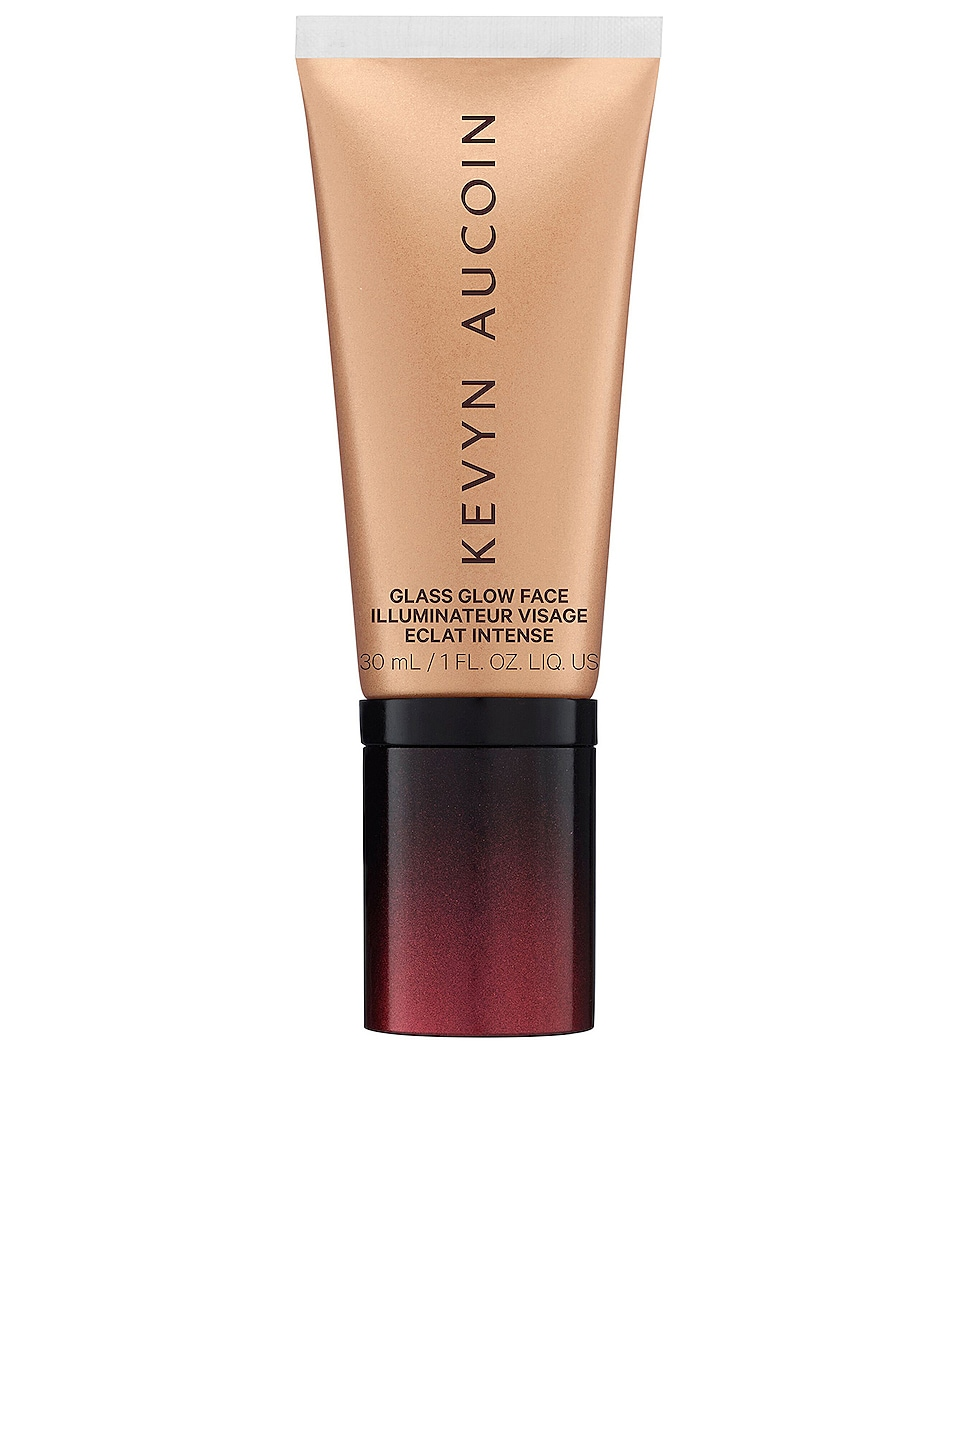 Kevyn Aucoin Glass Glow Face Highlight in Spectrum Bronze